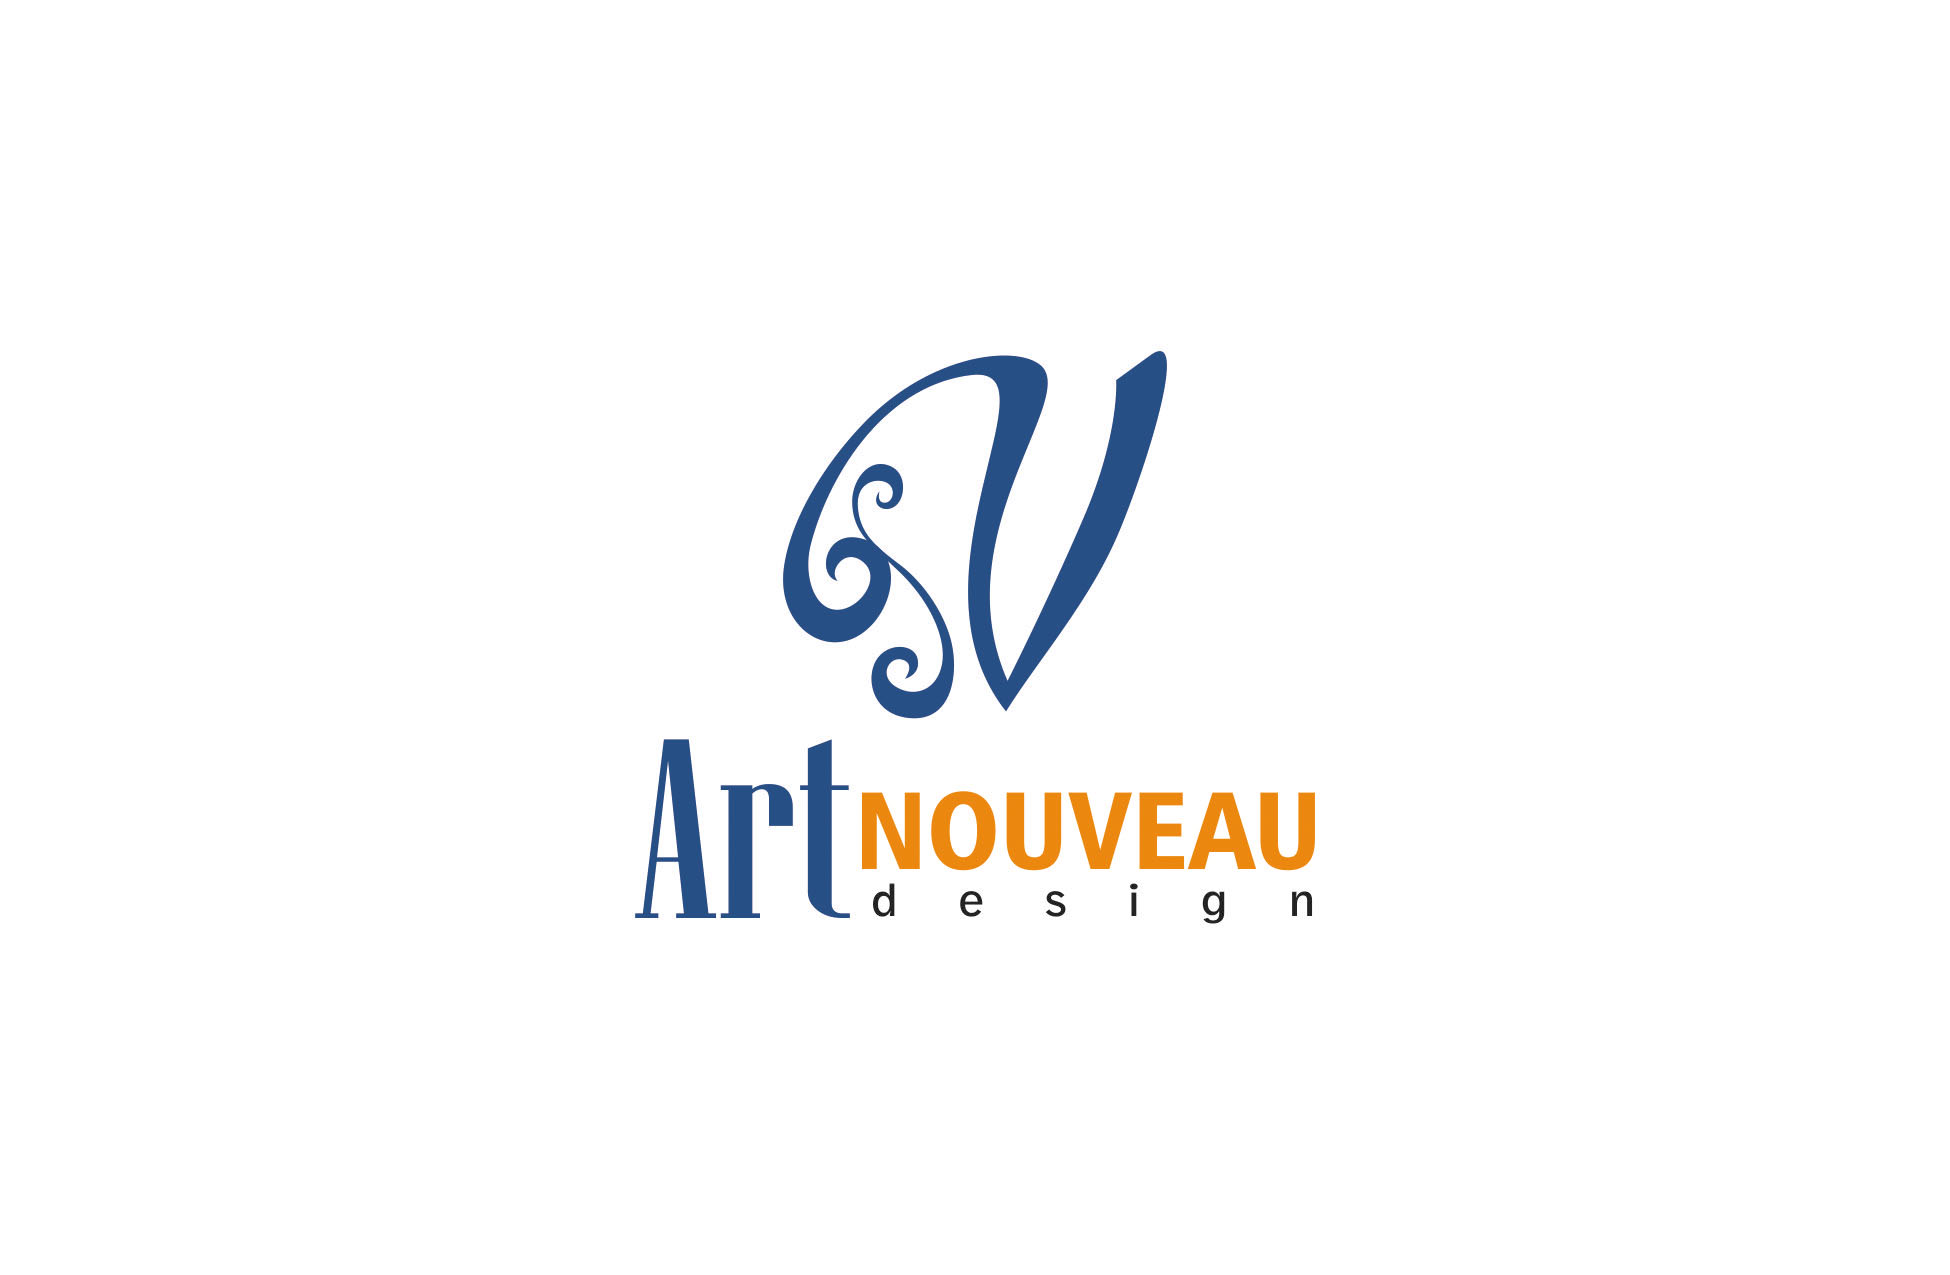 Logo Design by Respati Himawan - Entry No. 54 in the Logo Design Contest Artistic Logo Design for Art Nouveau Design.